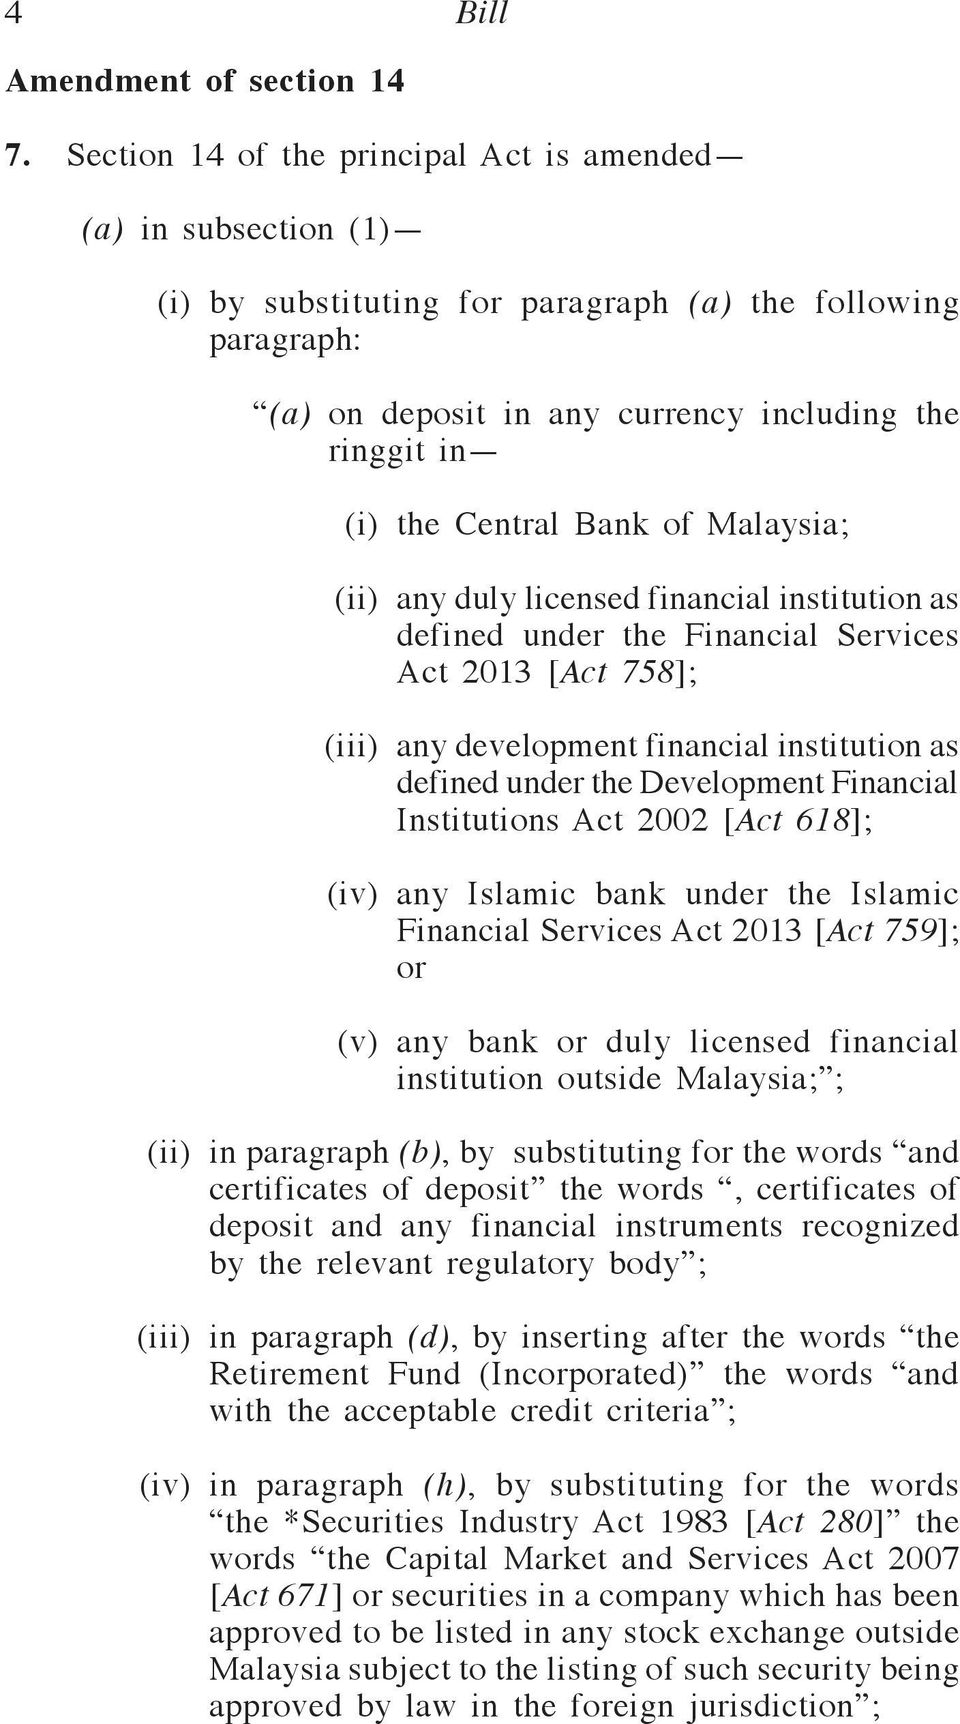 Malaysia; (ii) any duly licensed financial institution as defined under the Financial Services Act 2013 [Act 758]; (iii) any development financial institution as defined under the Development